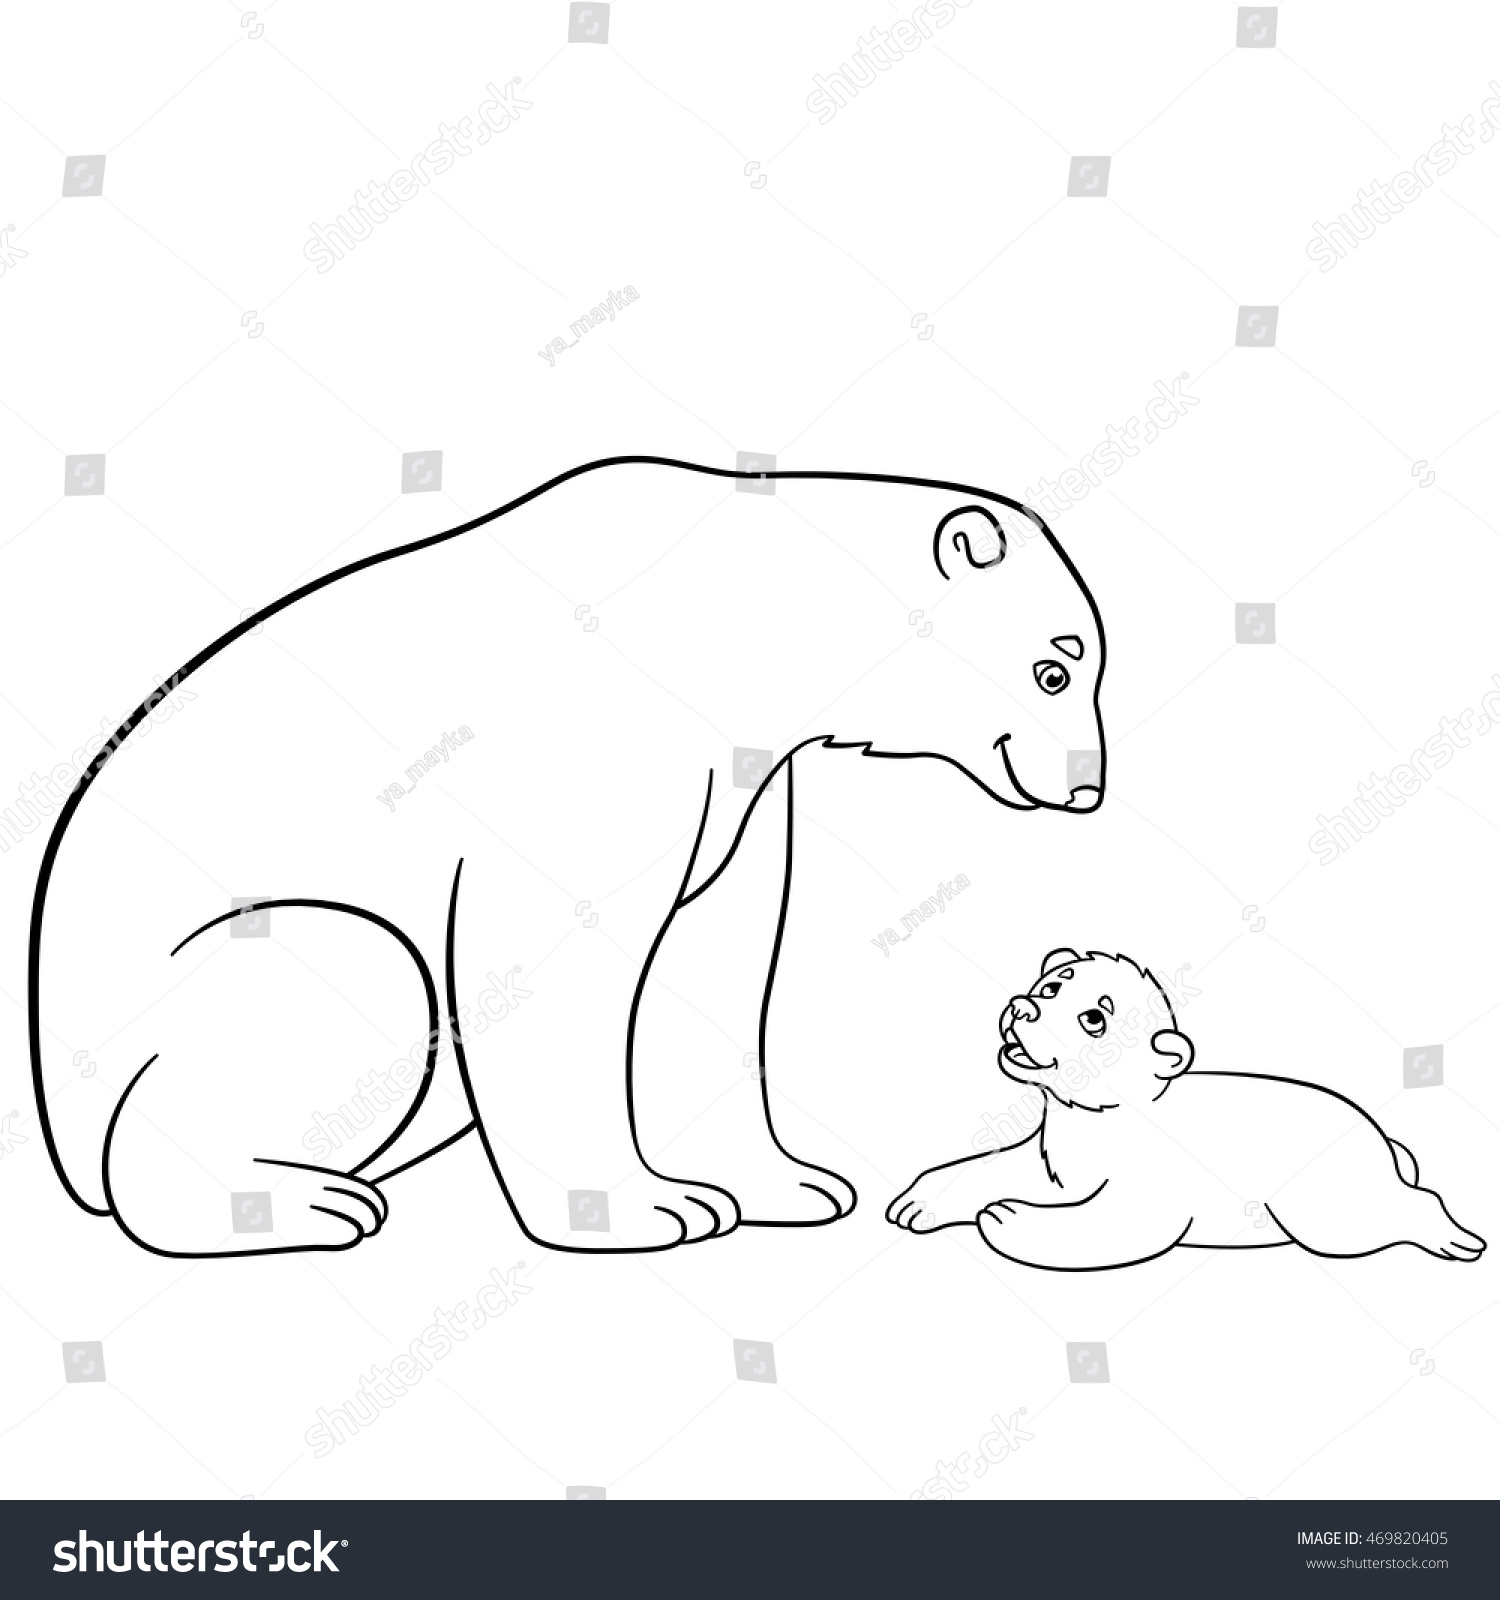 Coloring Pages Mother Polar Bear Sits Stock Vector 469820405 ...